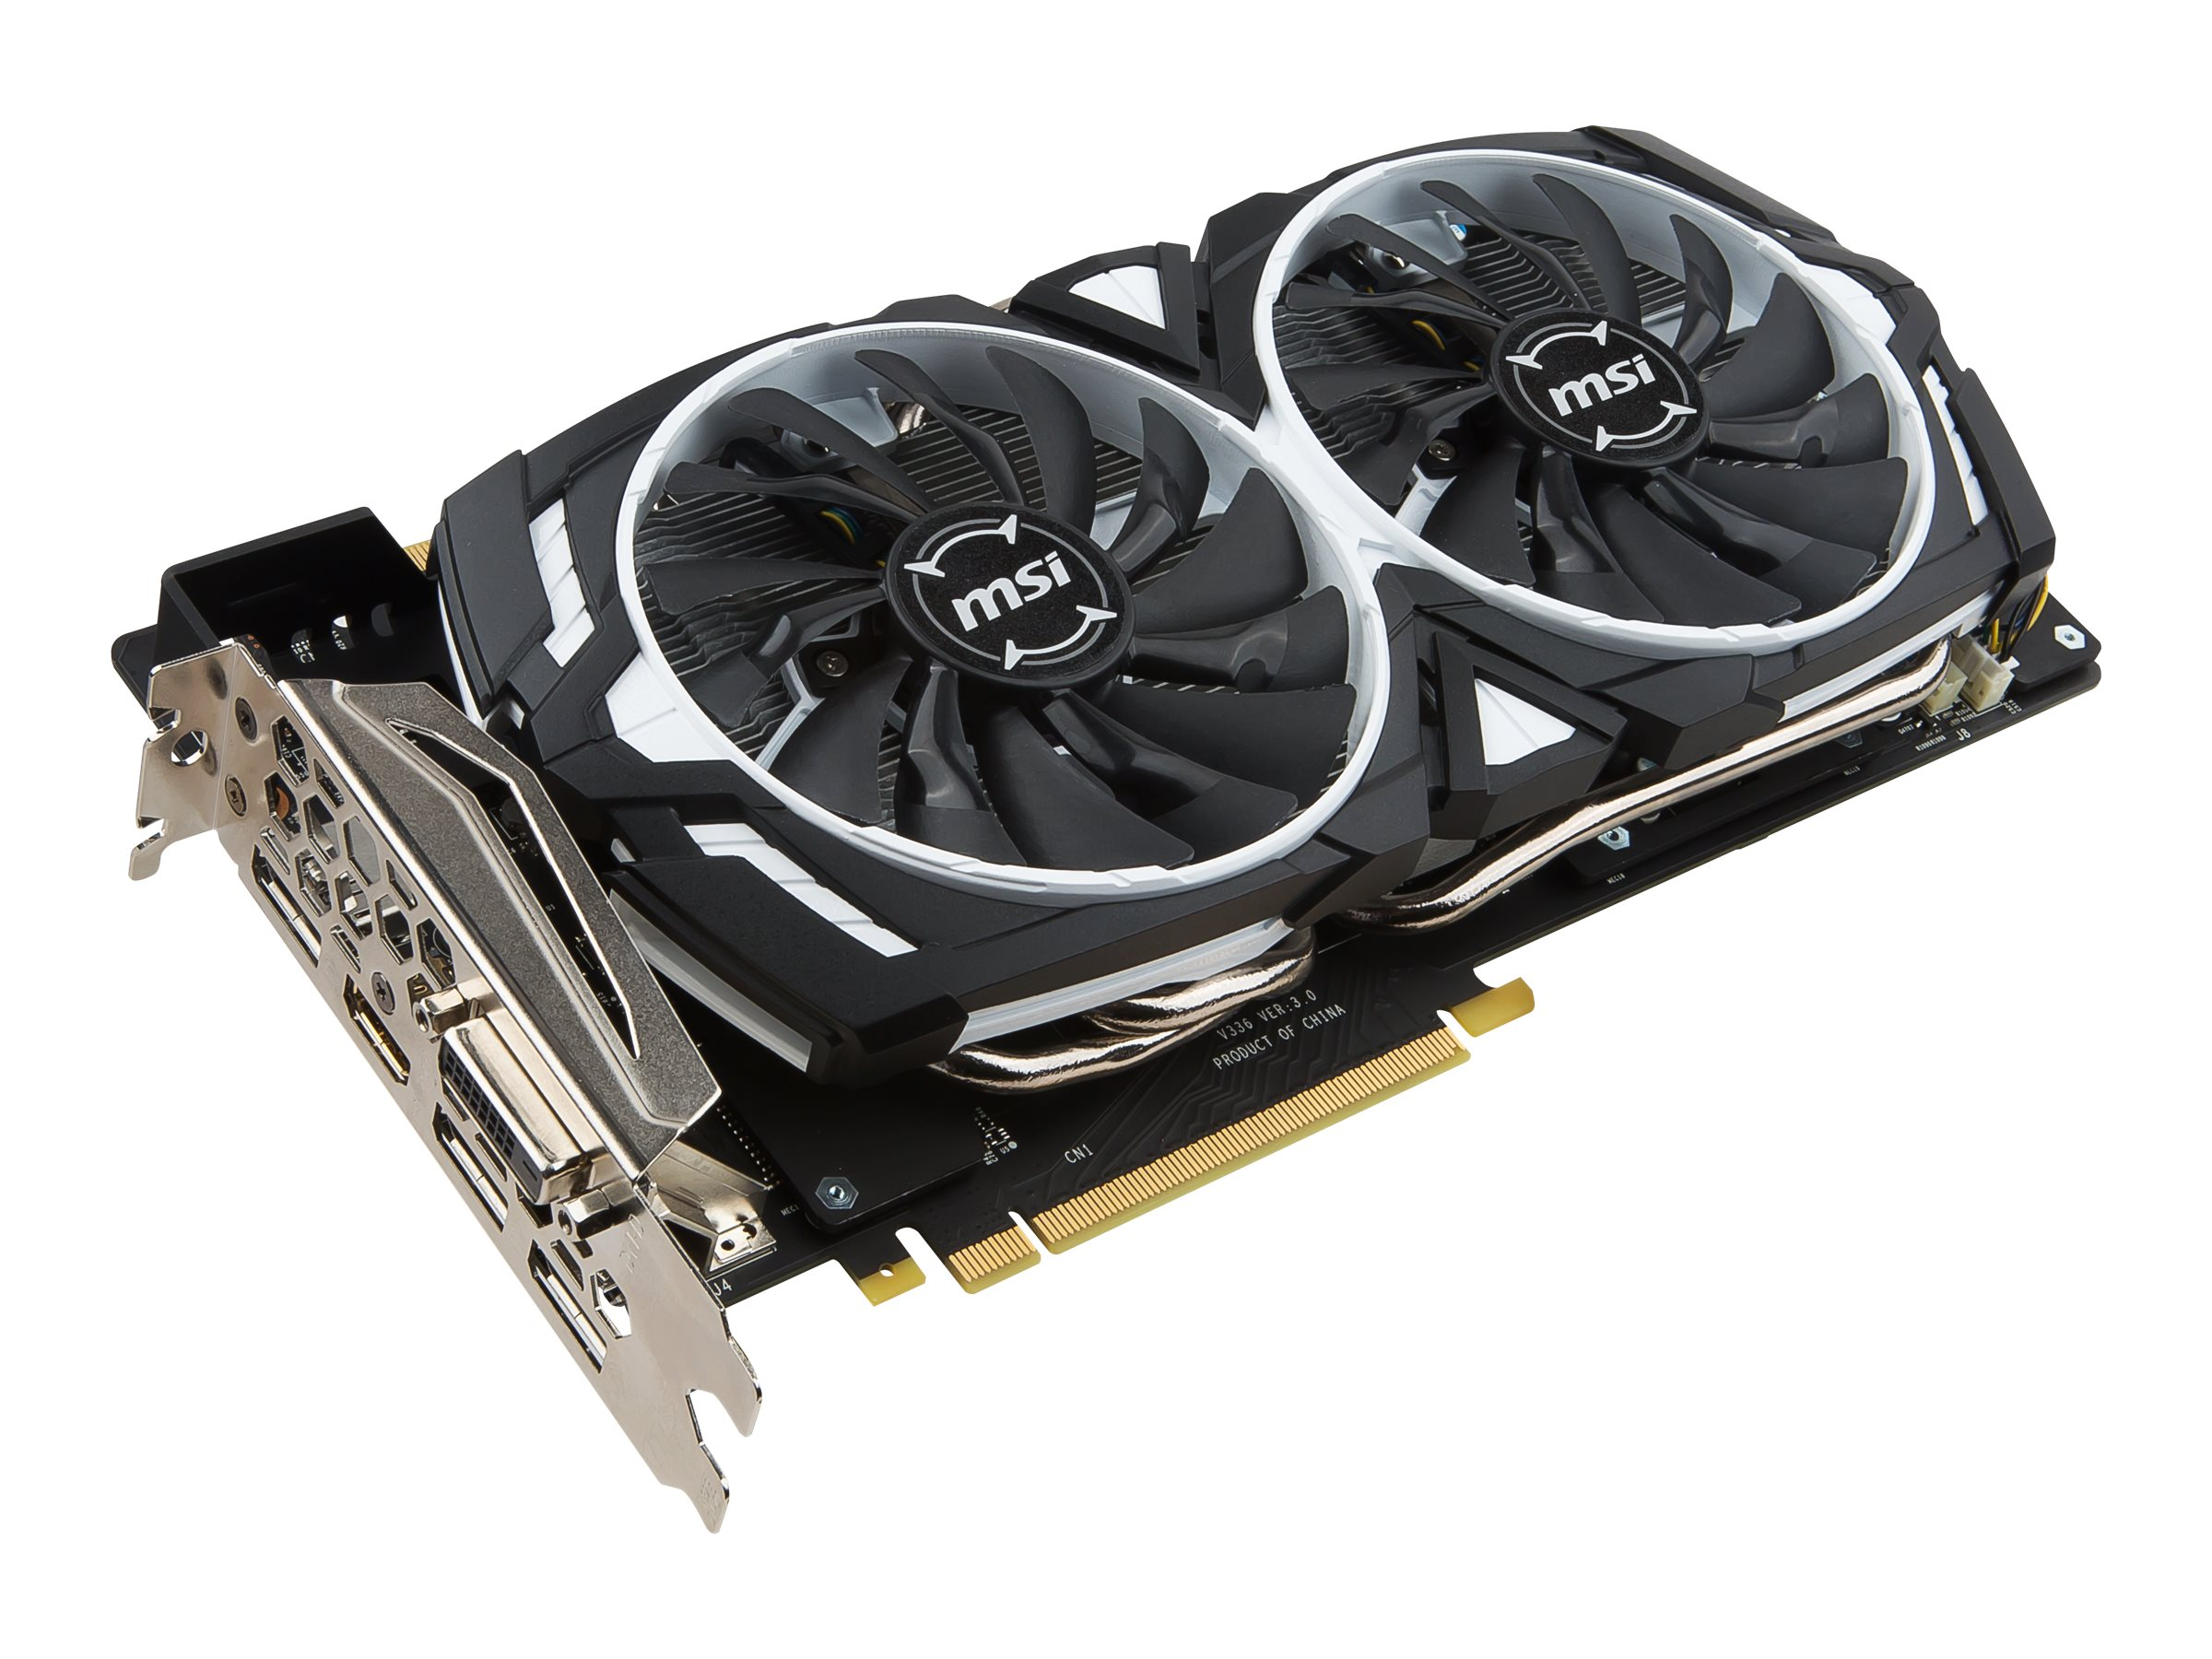 Microstar GeForce GTX1080 Armor Overclocked Graphics Card, 8GB GDDR5X, GTX 1080 ARMOR 8G OC